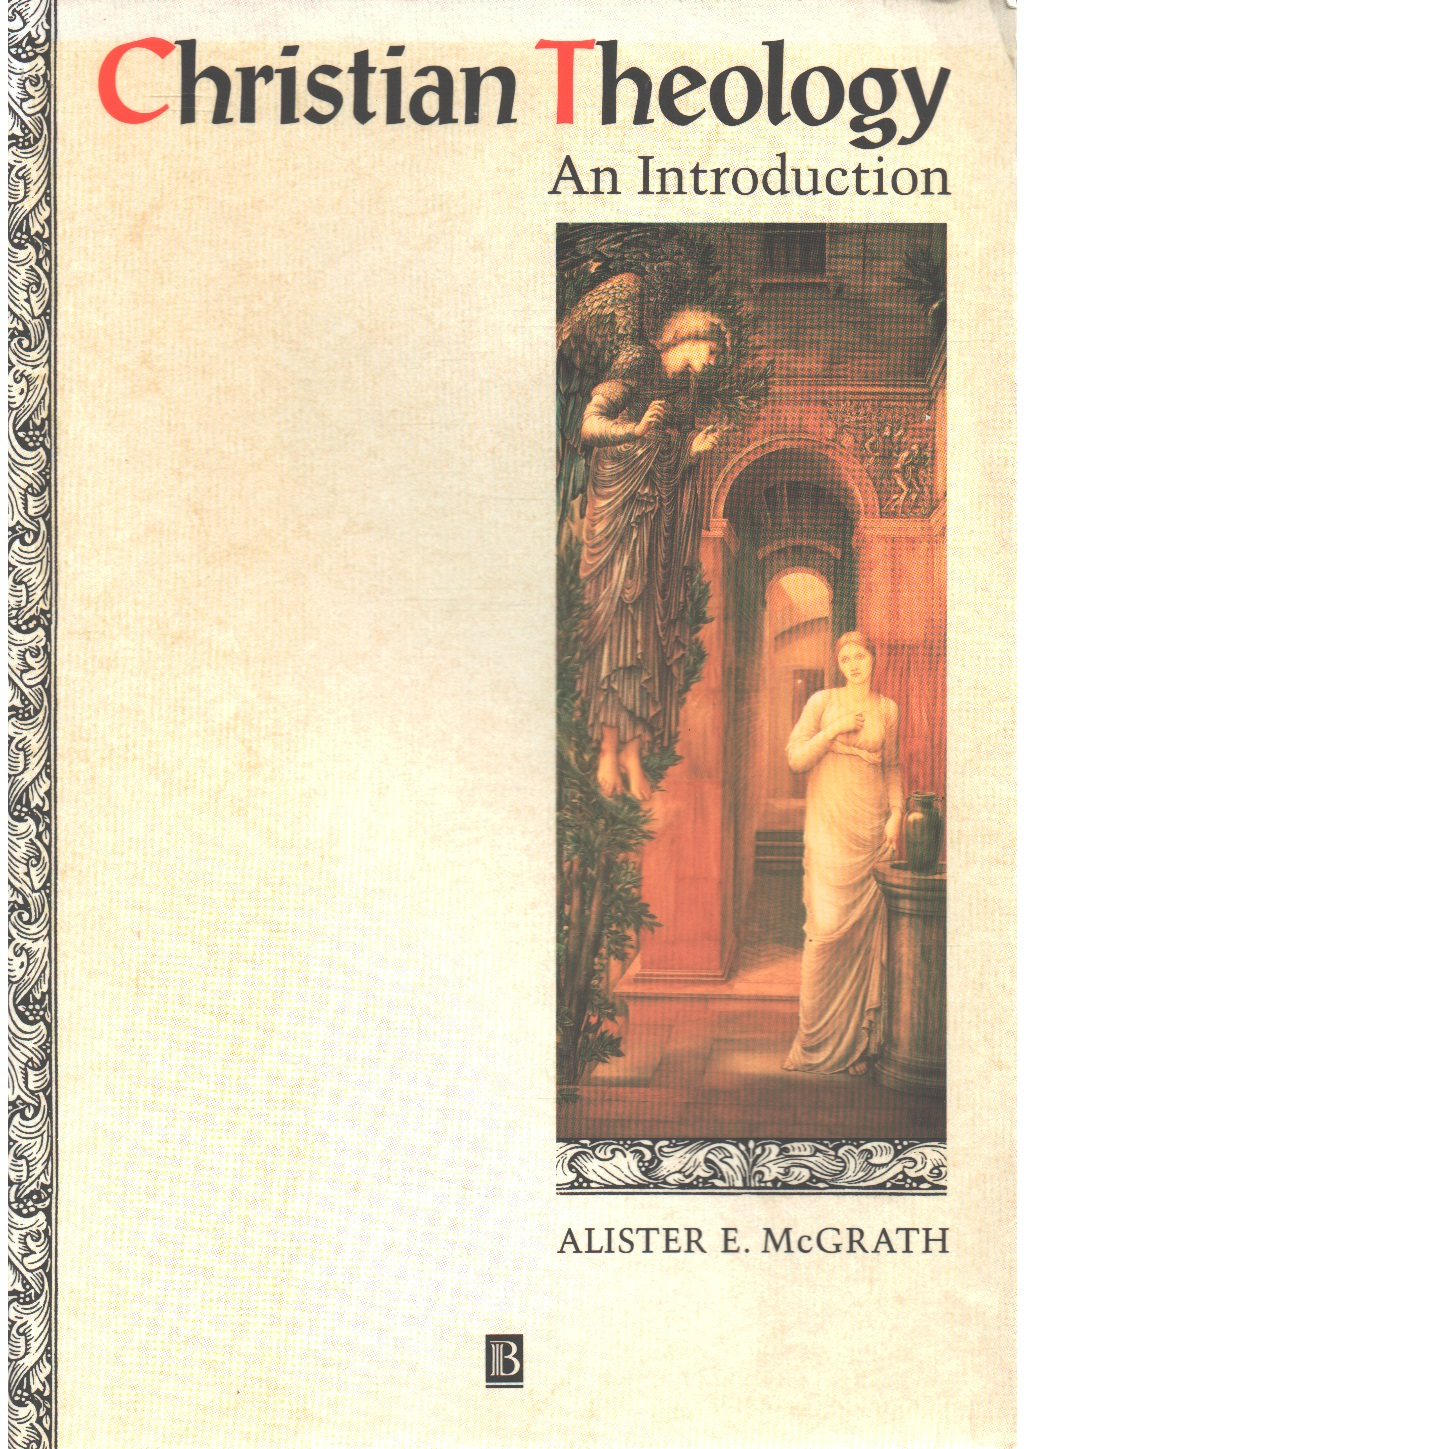 Christian theology : an introduction  - McGrath, Alister E.